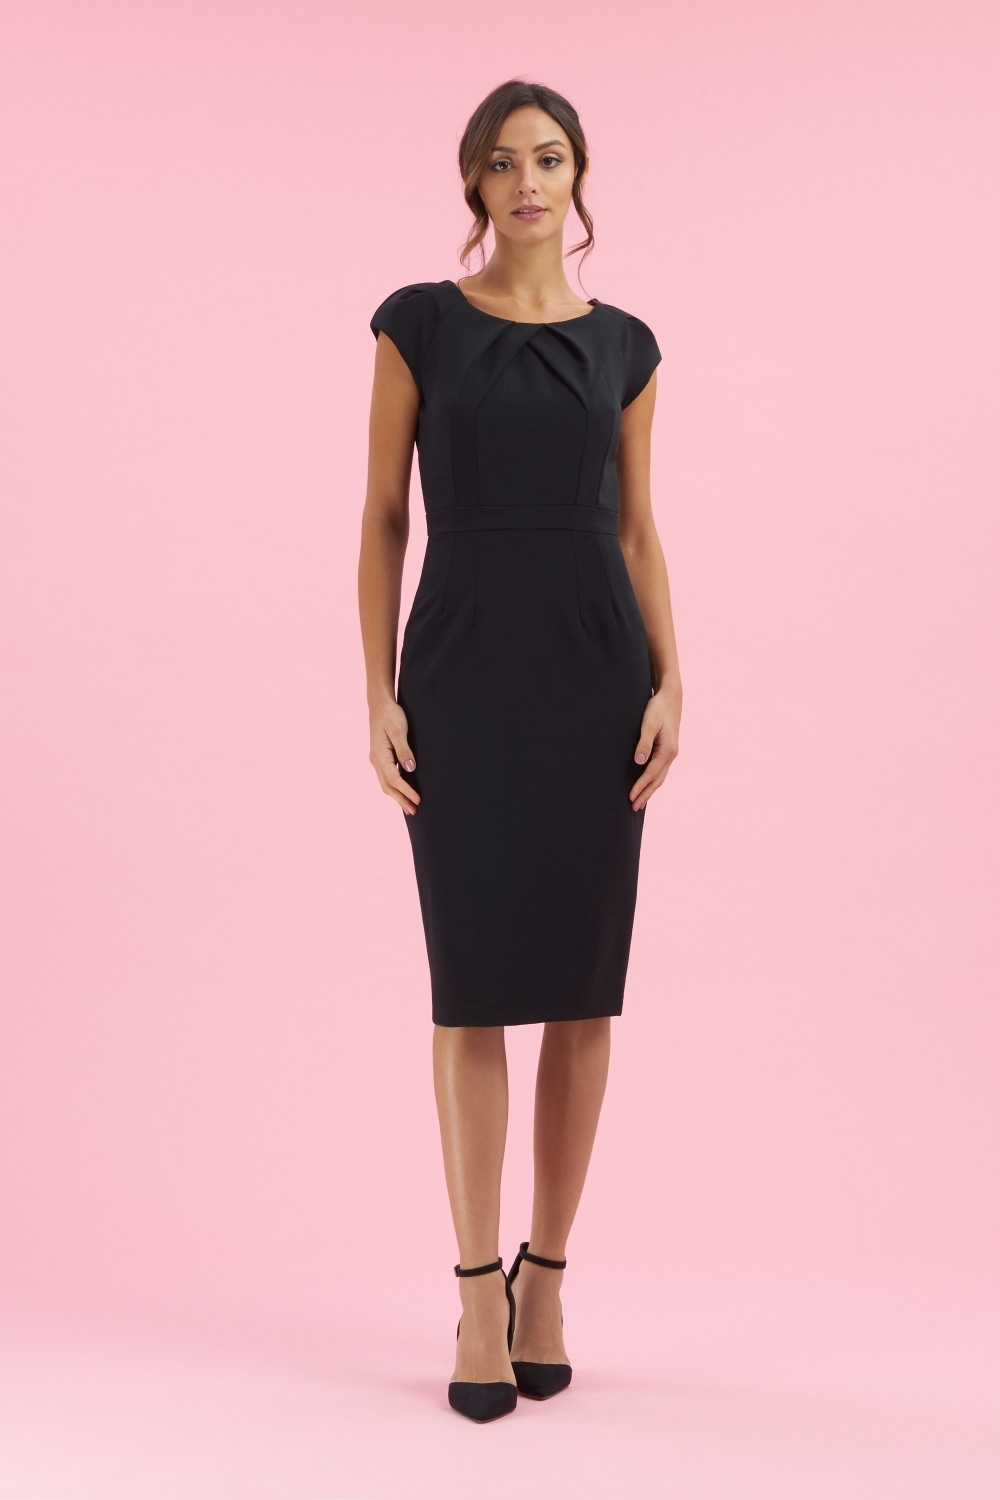 The Pretty Dress Company Layla Cap Sleeve Pencil Dress